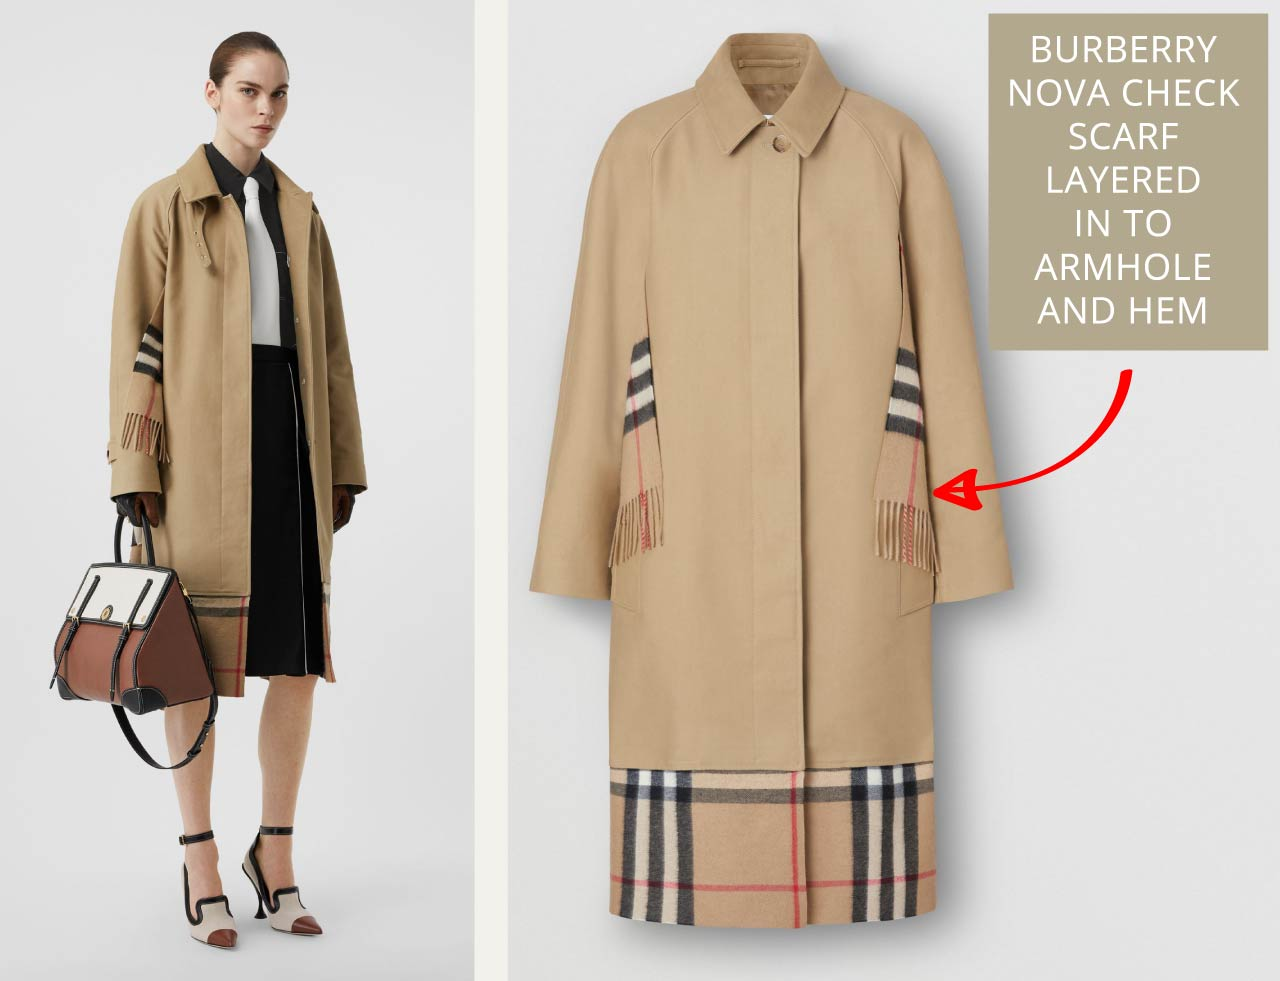 Burberry scarf with Nova check inserted into armhole seams and hem of car coat.